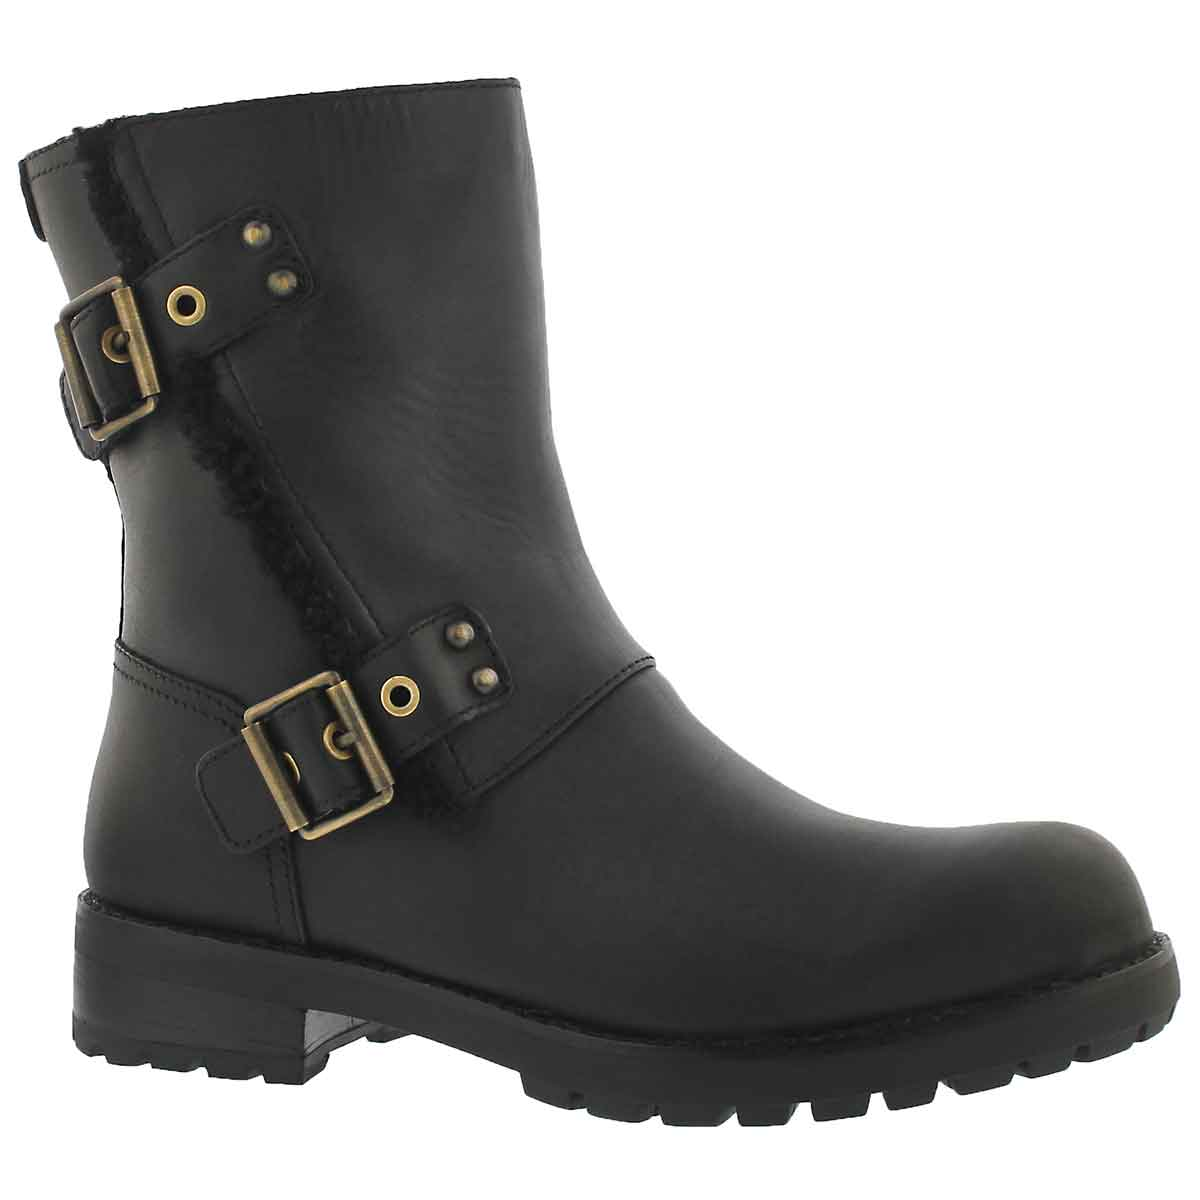 Women's NIELS black zip up ankle boots